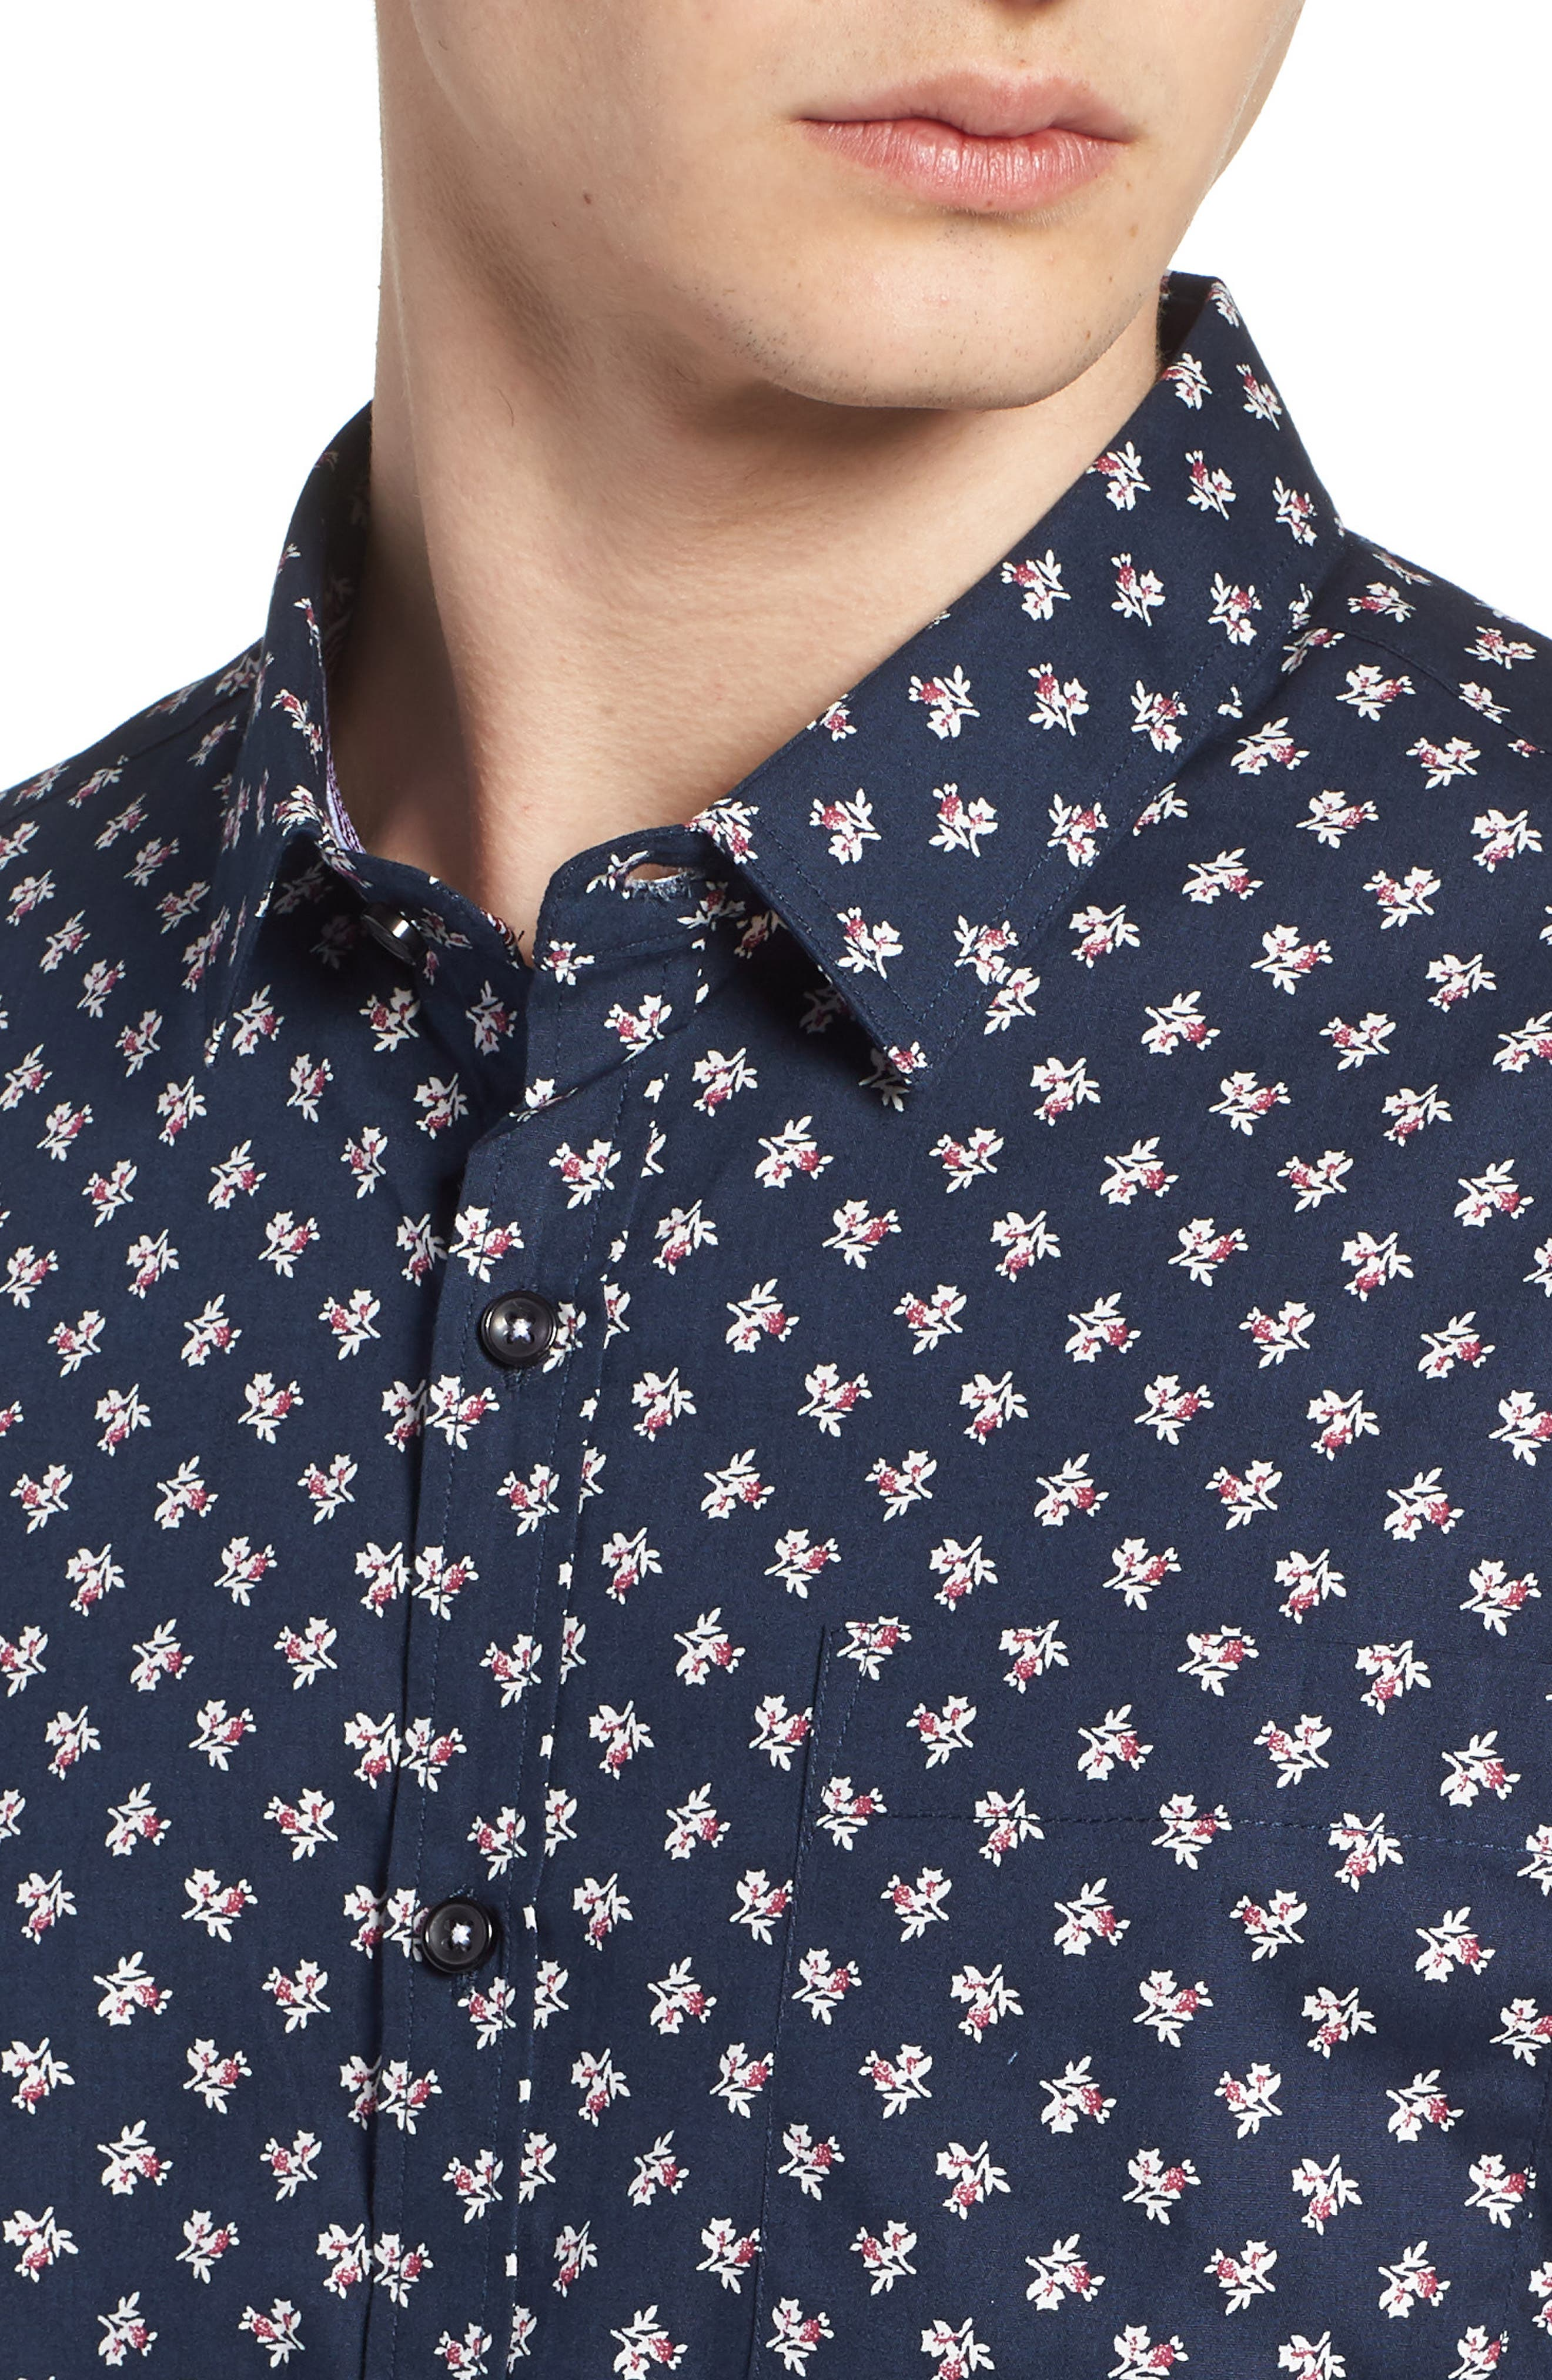 'Crossfire' Floral Print Short Sleeve Woven Shirt,                             Alternate thumbnail 7, color,